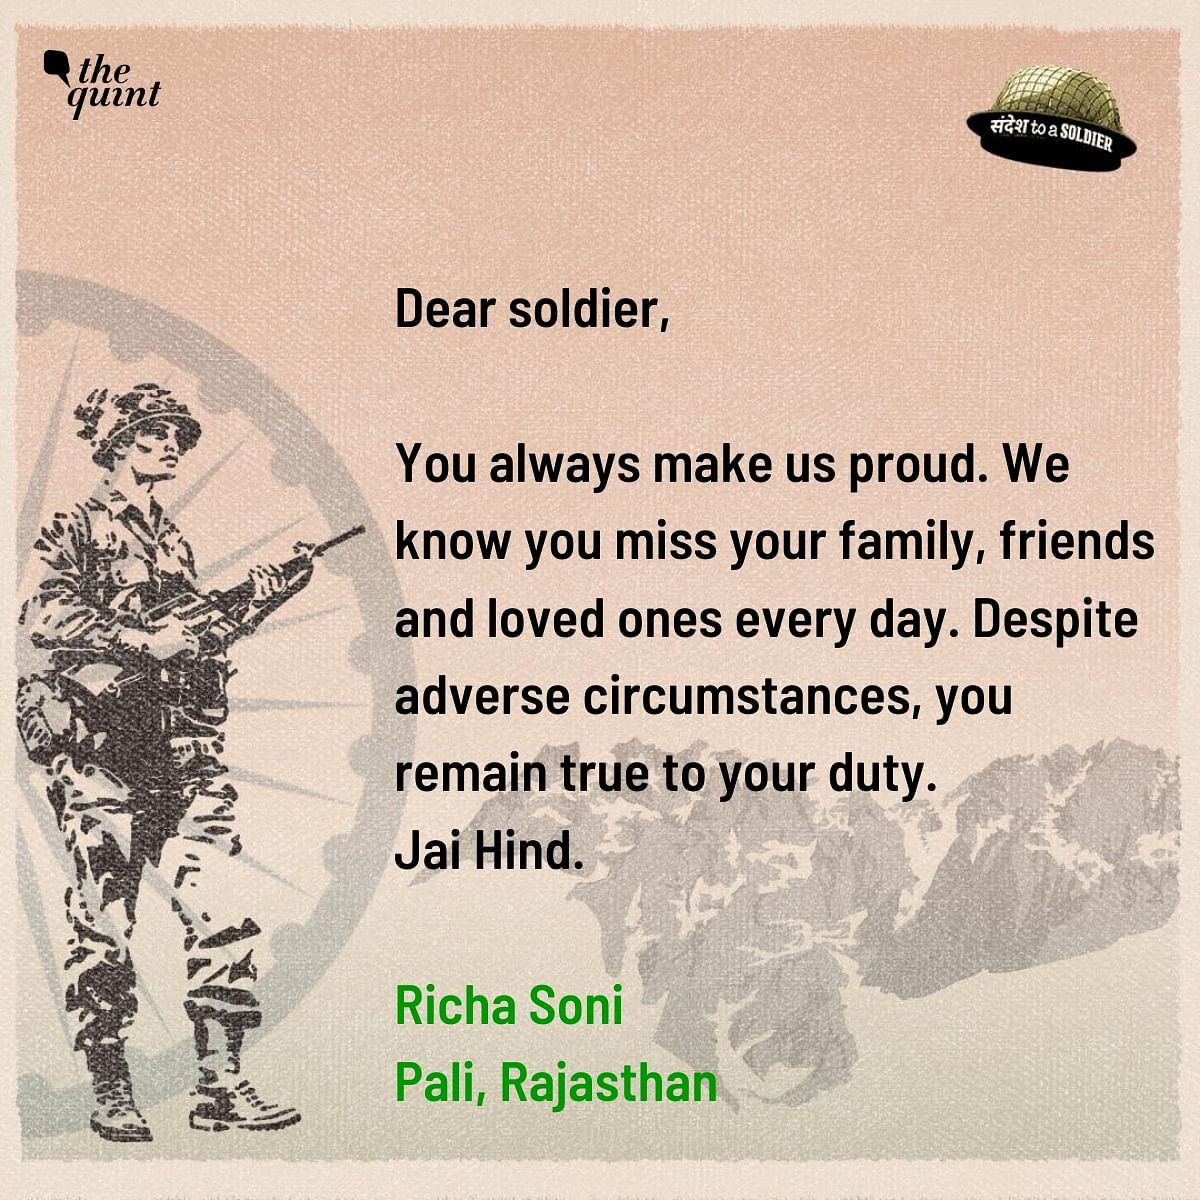 Richa Soni from Rajasthan sends her sandesh to a soldier.